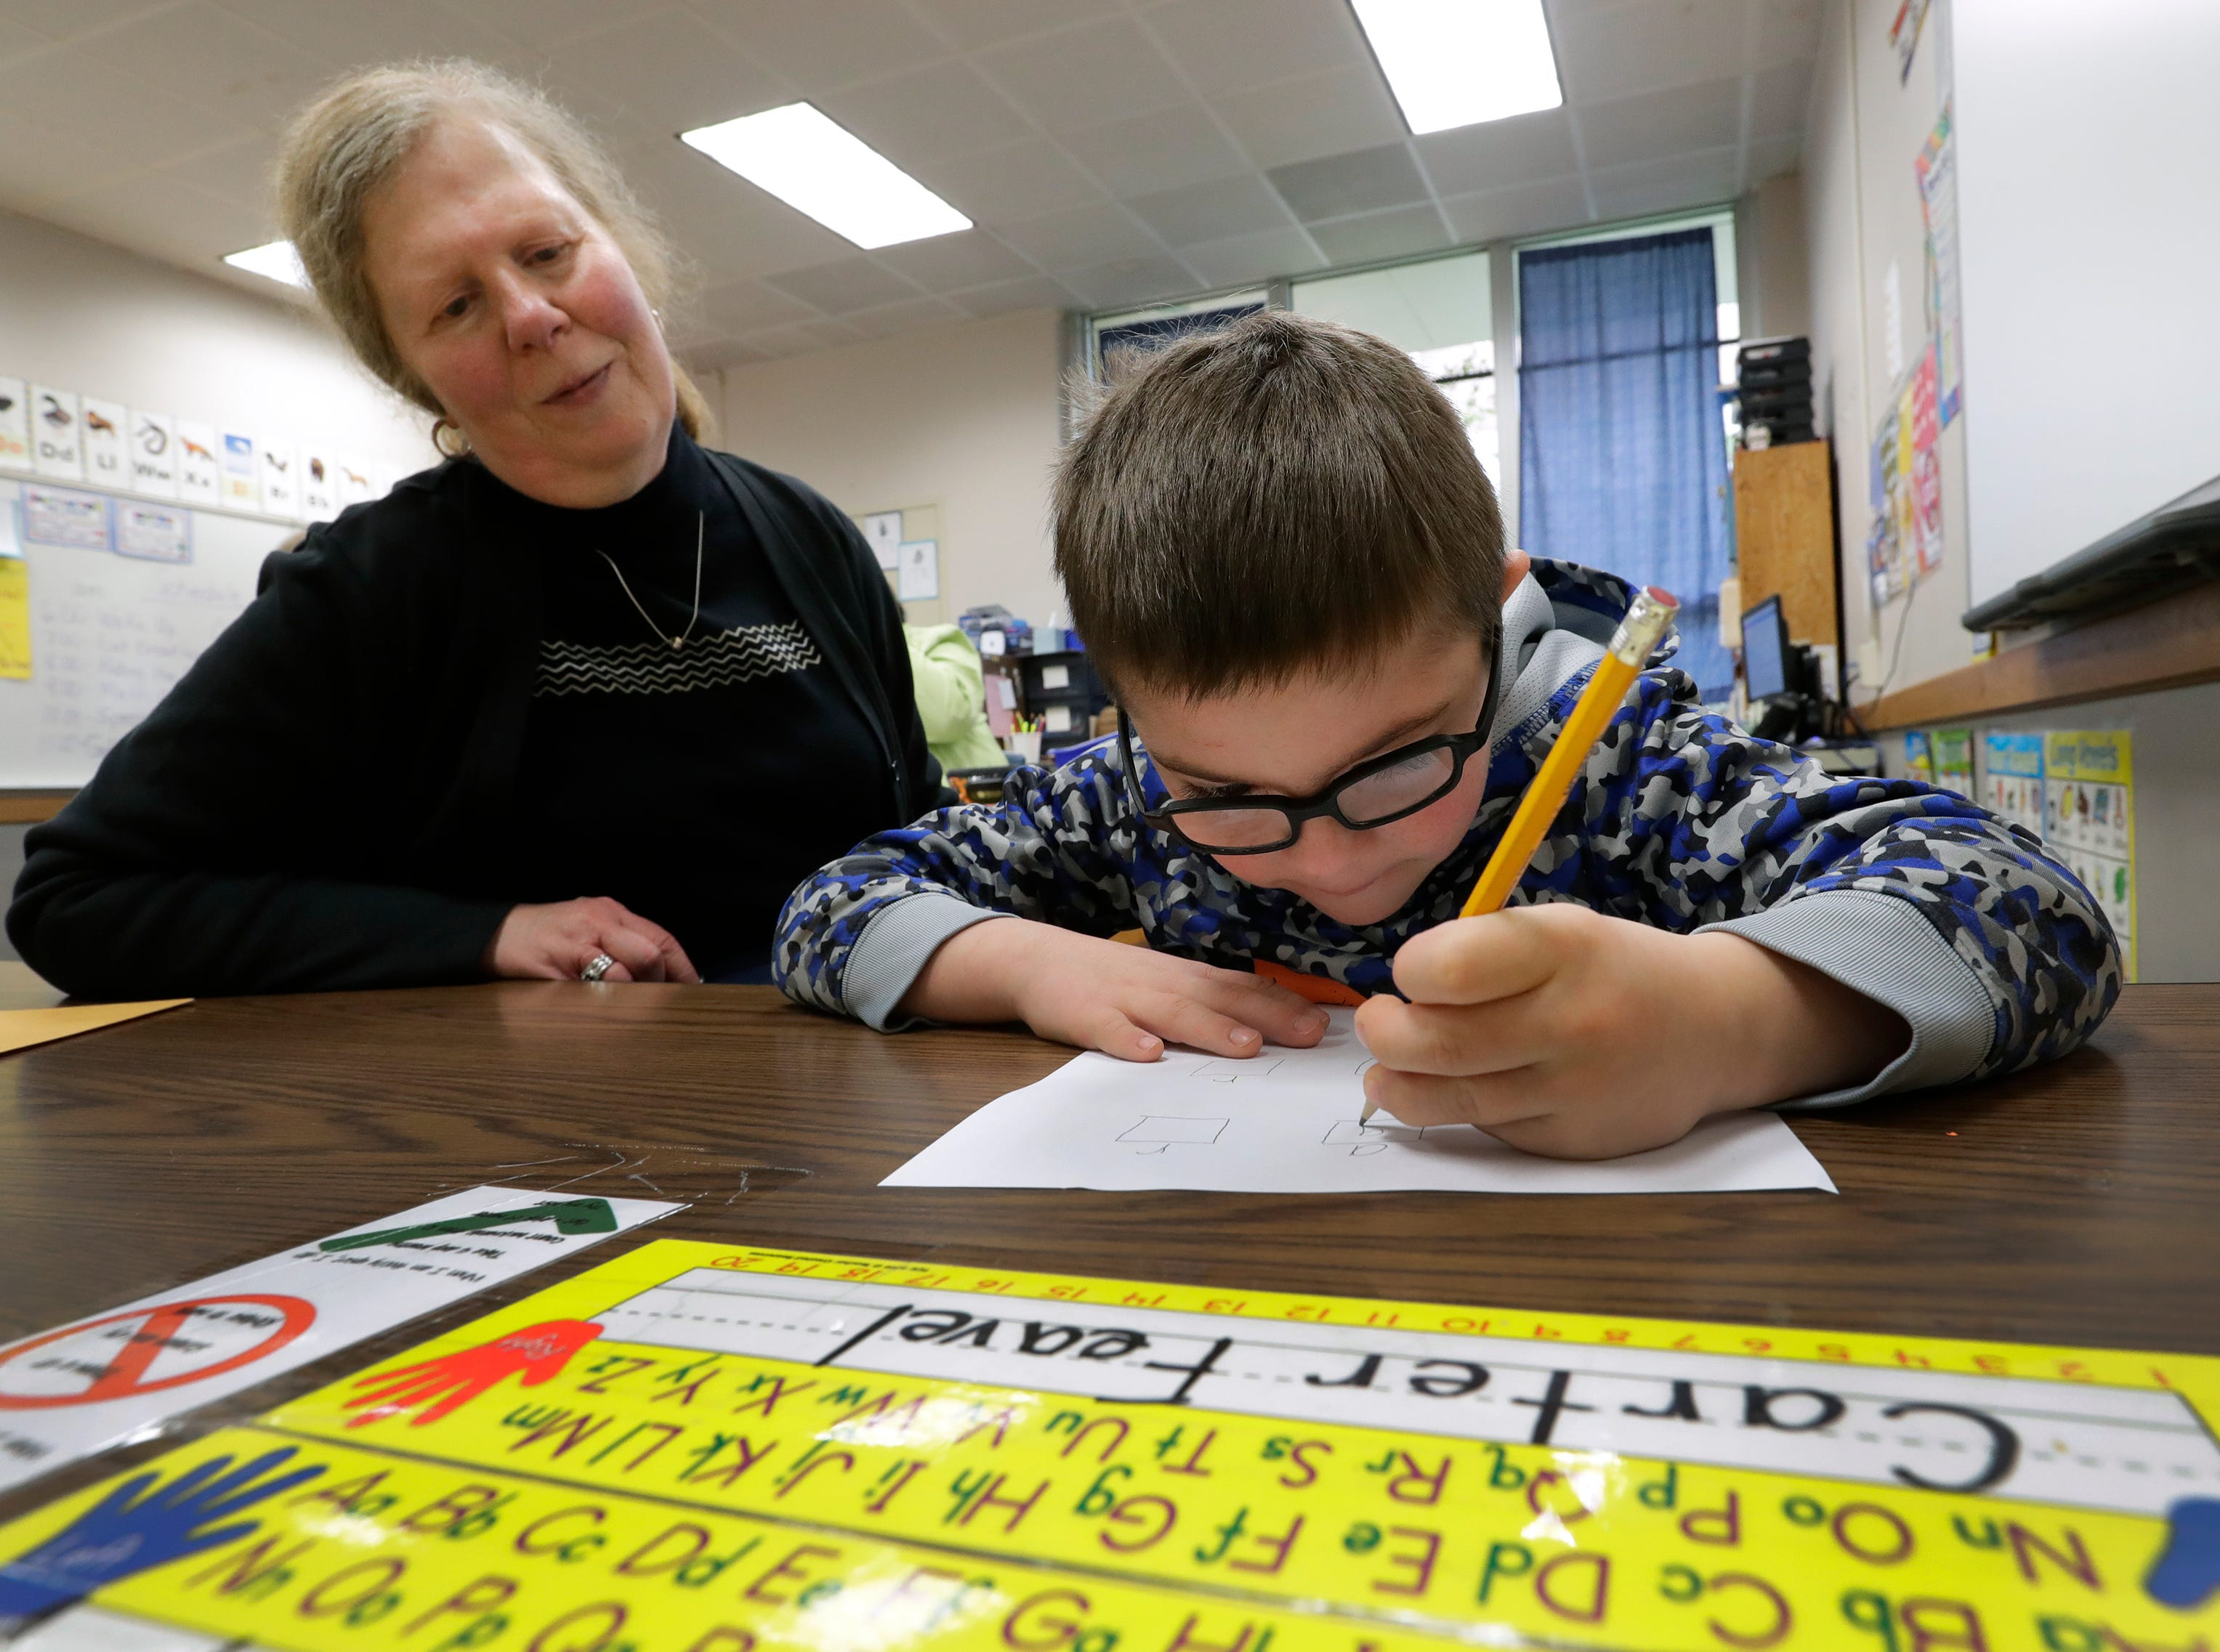 Paraprofessional Diane Conrad helps Carter Feavel work on writing letters of the alphabet during his intellectual disabilities cross categorical special education class Thursday, May 9, 2019, at Huntley Elementary School in Appleton, Wis. 